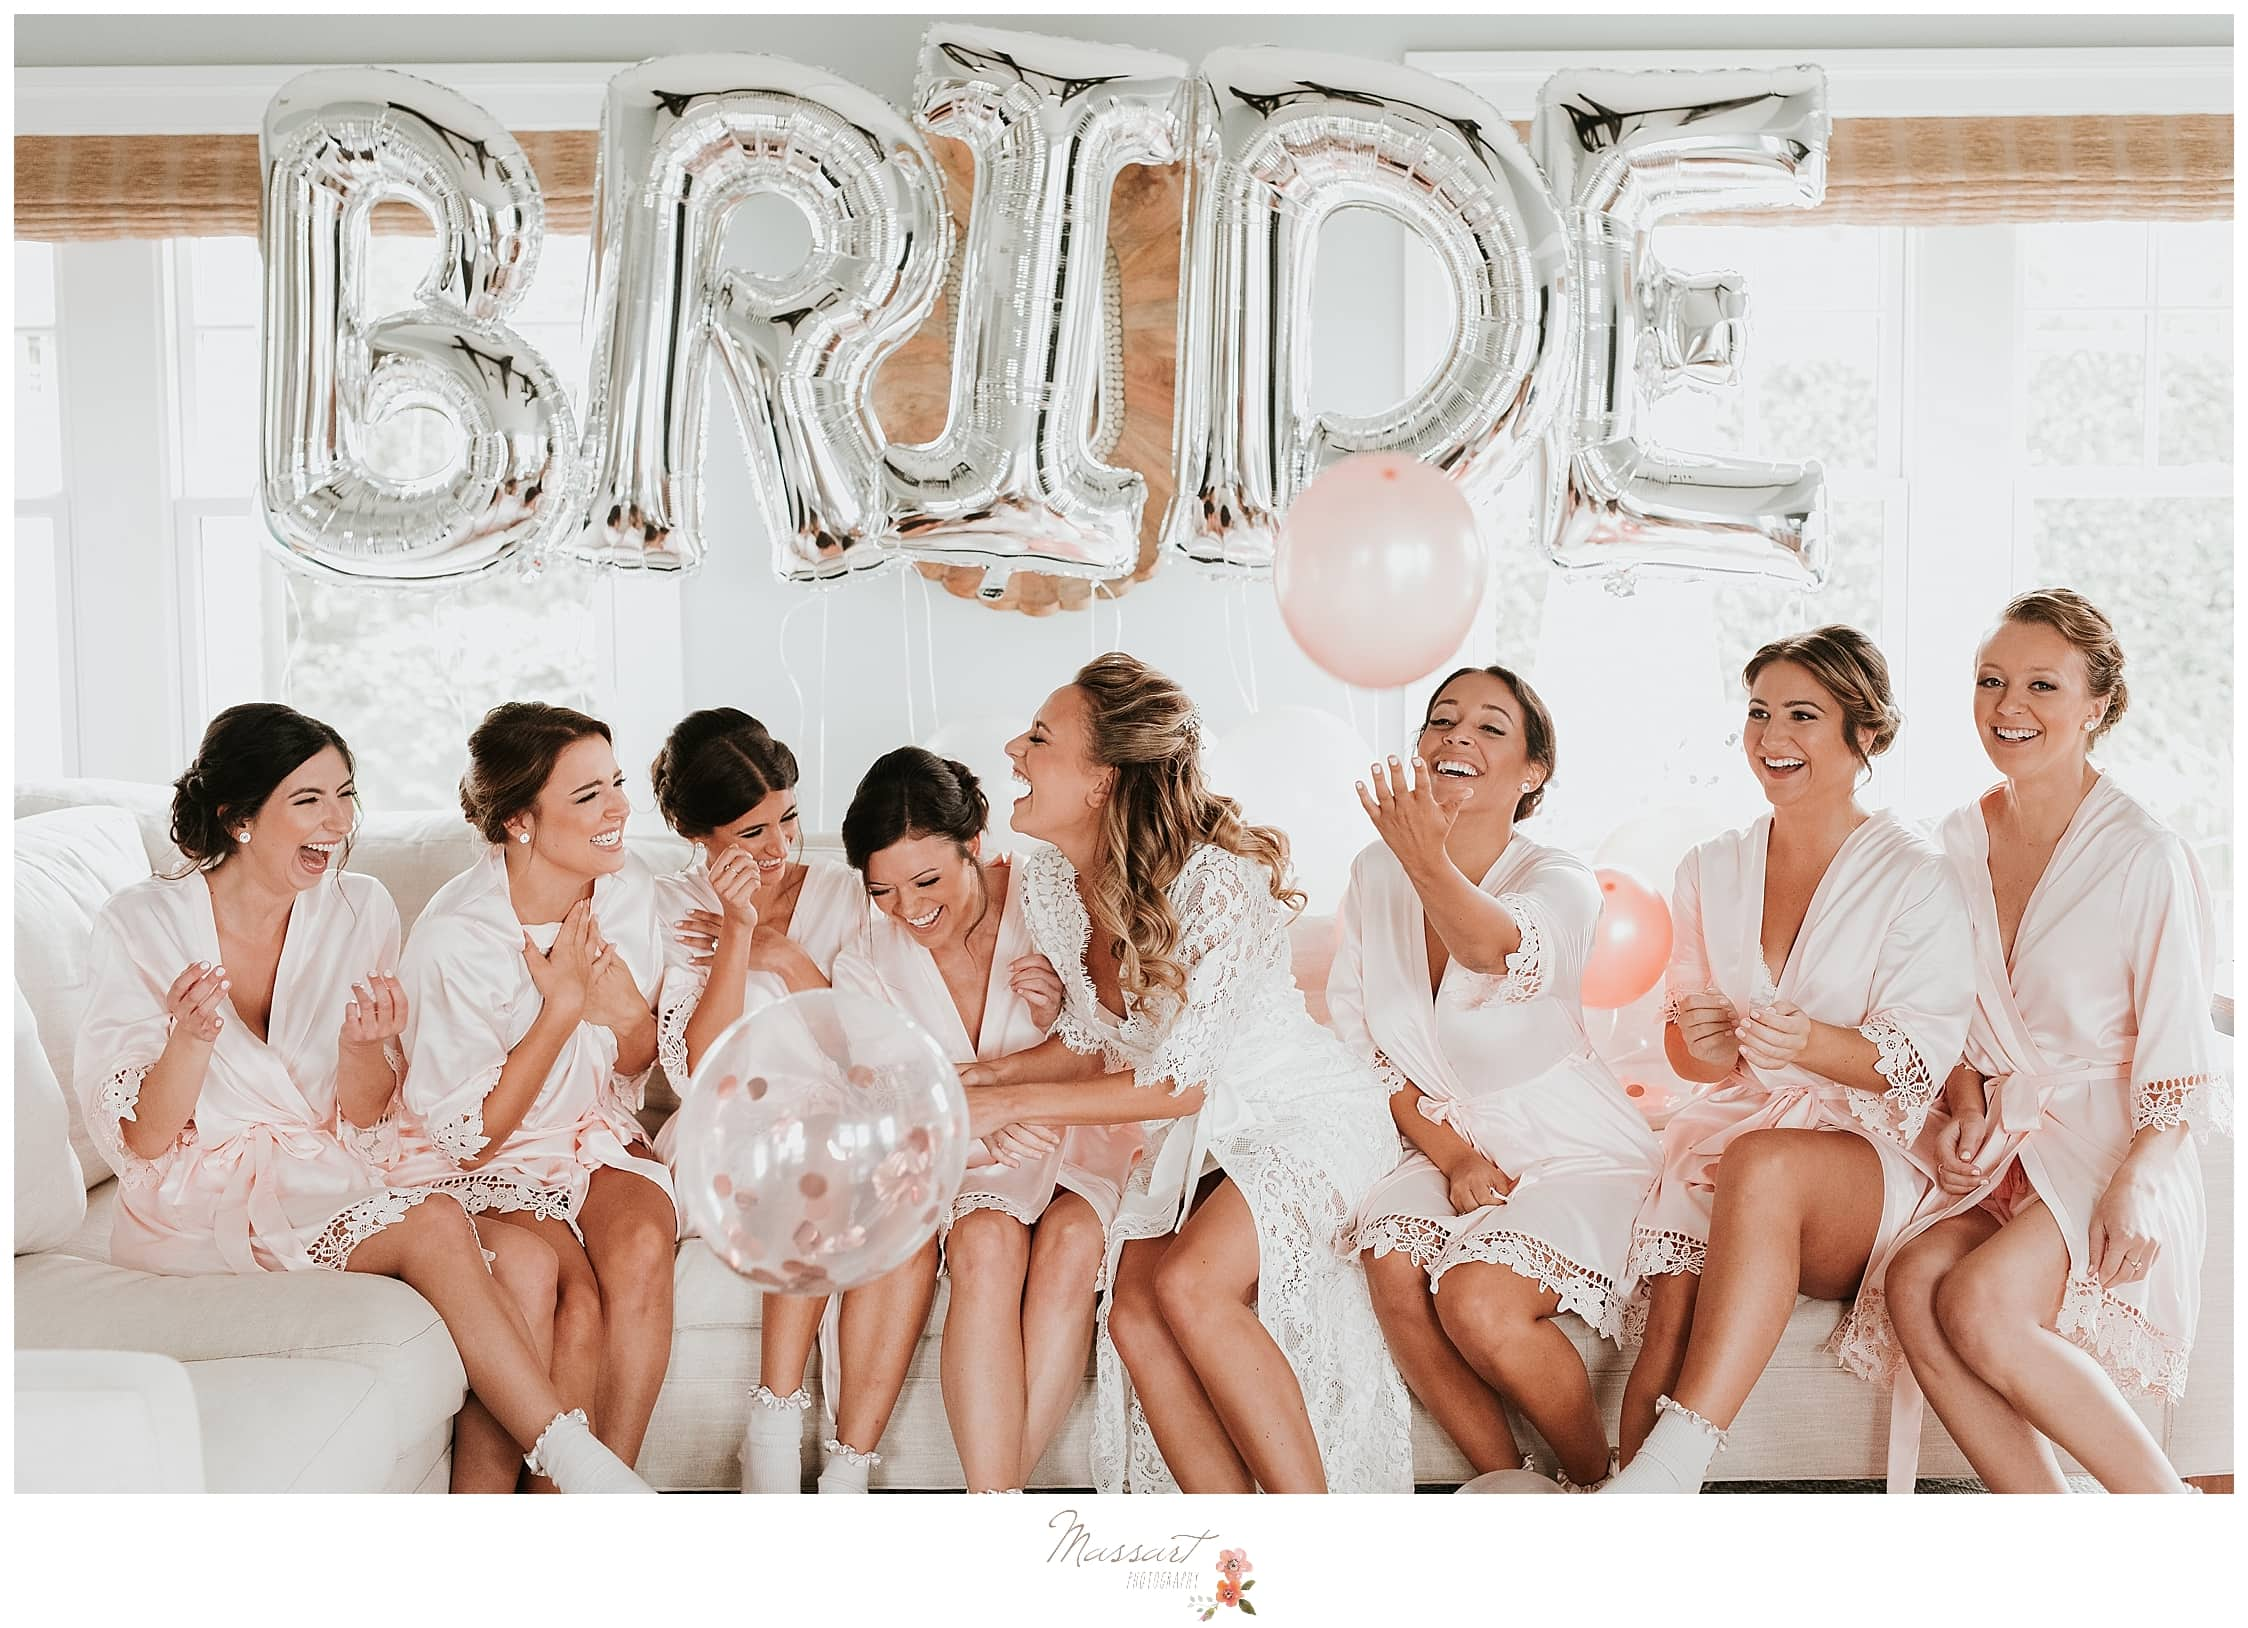 bride and bridesmaids with silver BRIDE balloons before wedding day at Castle Hill Inn photographed by Massart Photography